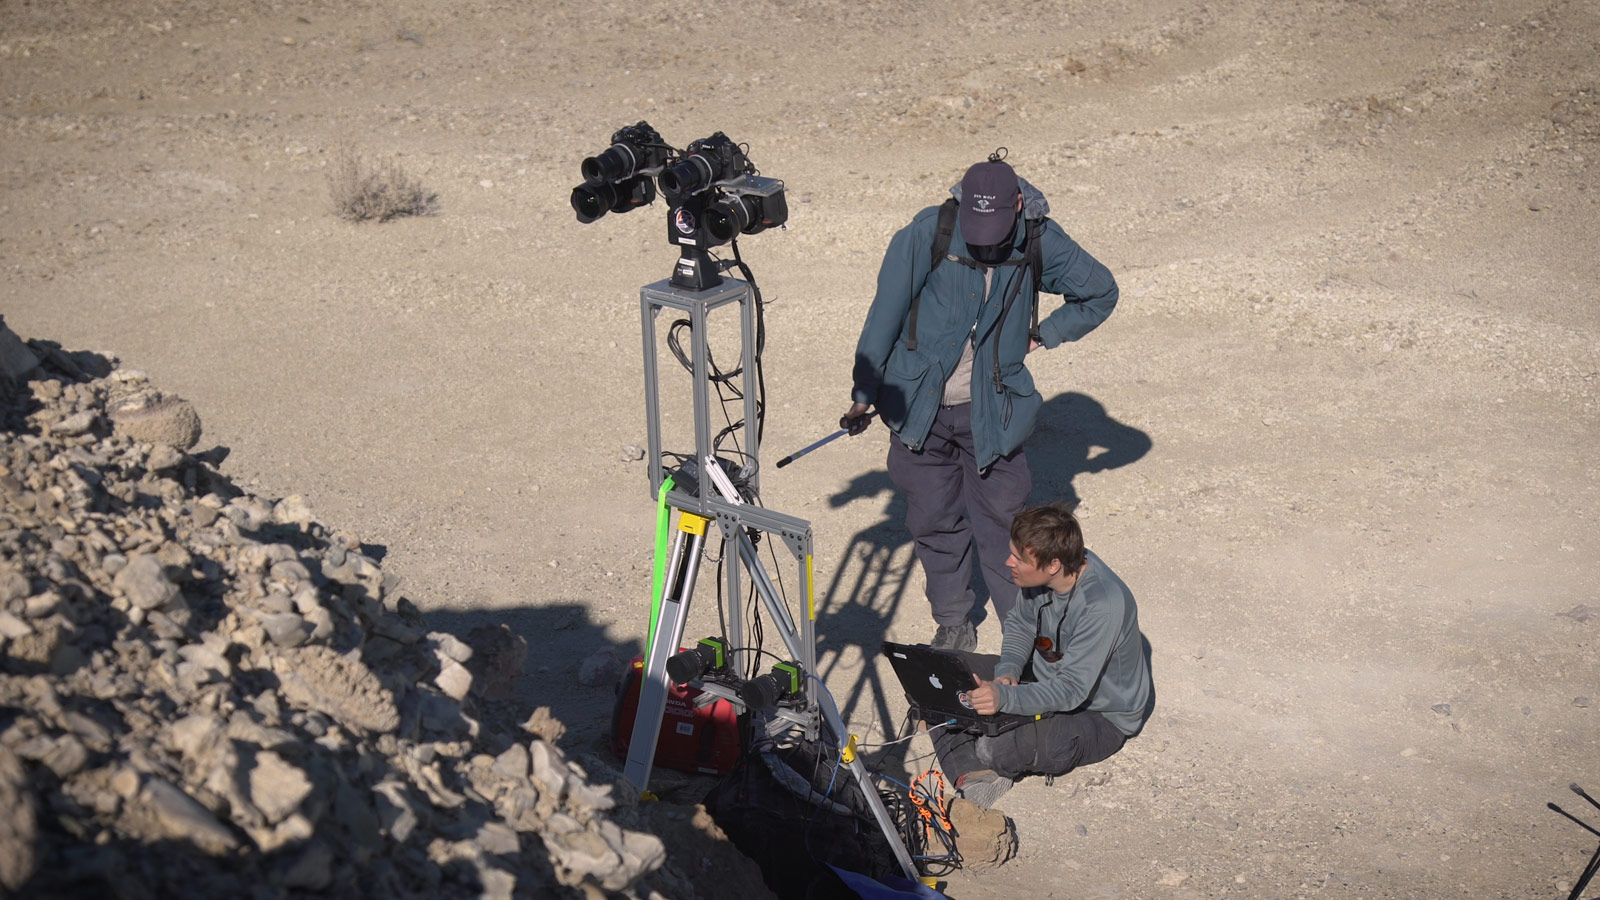 Two members of the field team set up cameras in the Nevada desert.